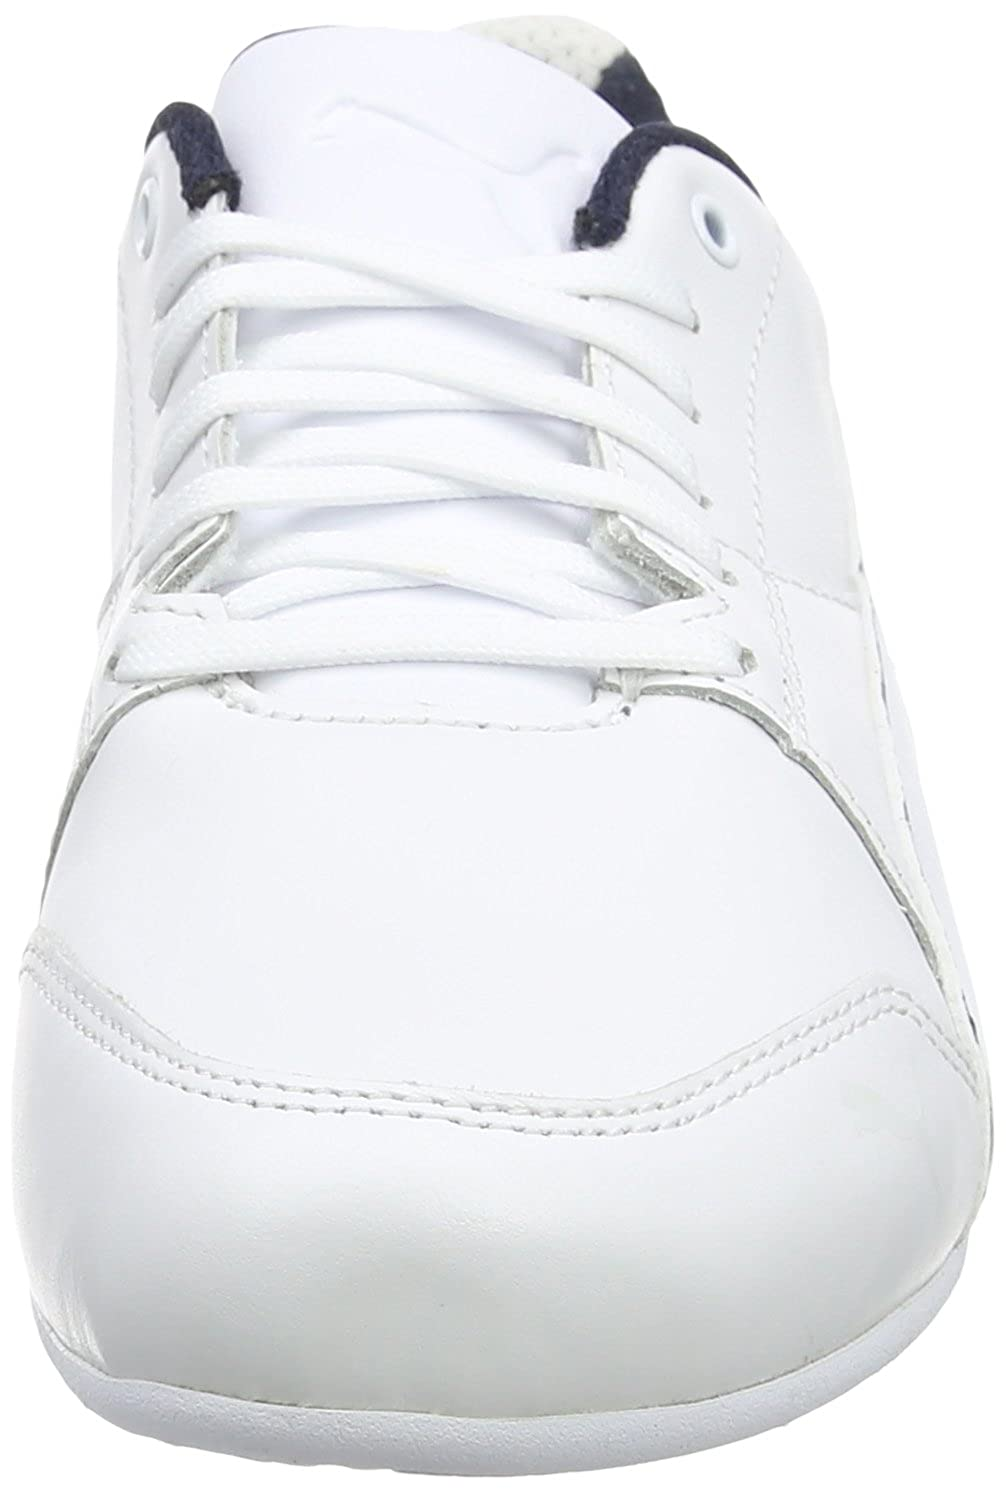 c7a95a9888e0 Puma Unisex BMW Ms Drift Cat 7 Puma White-Team Blue-Puma White Sneakers -  12 UK India (47 EU) (30598602)  Buy Online at Low Prices in India -  Amazon.in